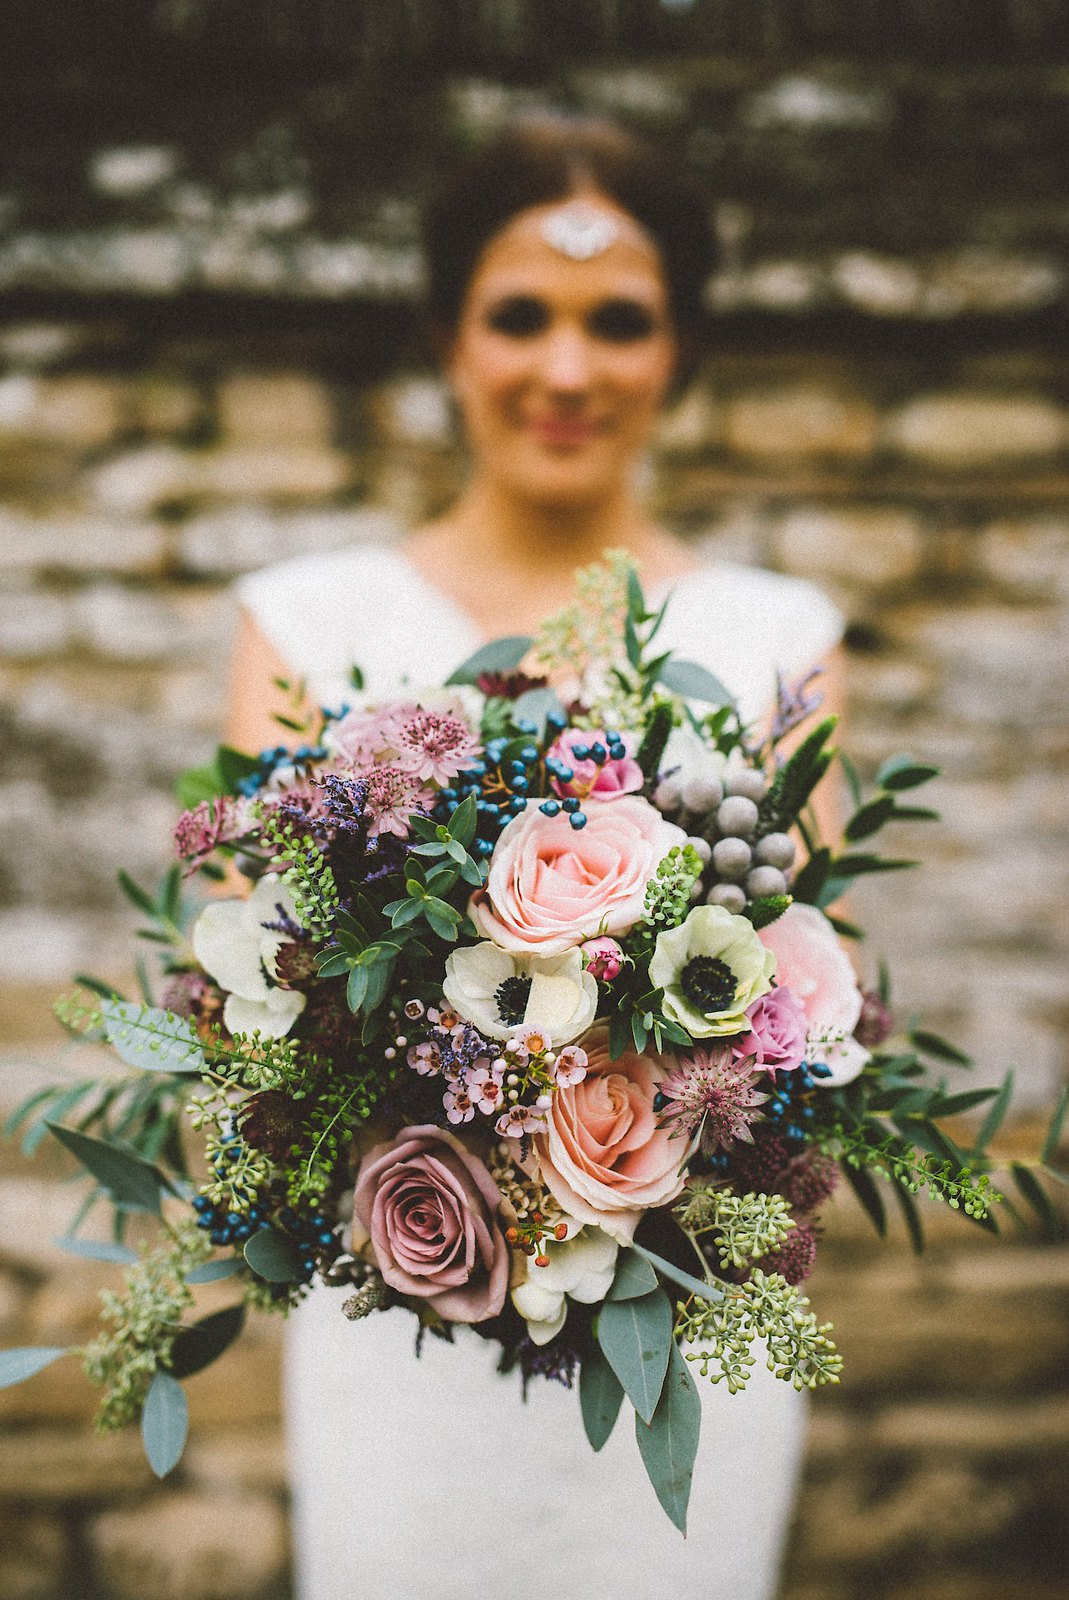 Wedding flowers for autumn autumn wedding flowers ideas for Bouquet of flowers for weddings